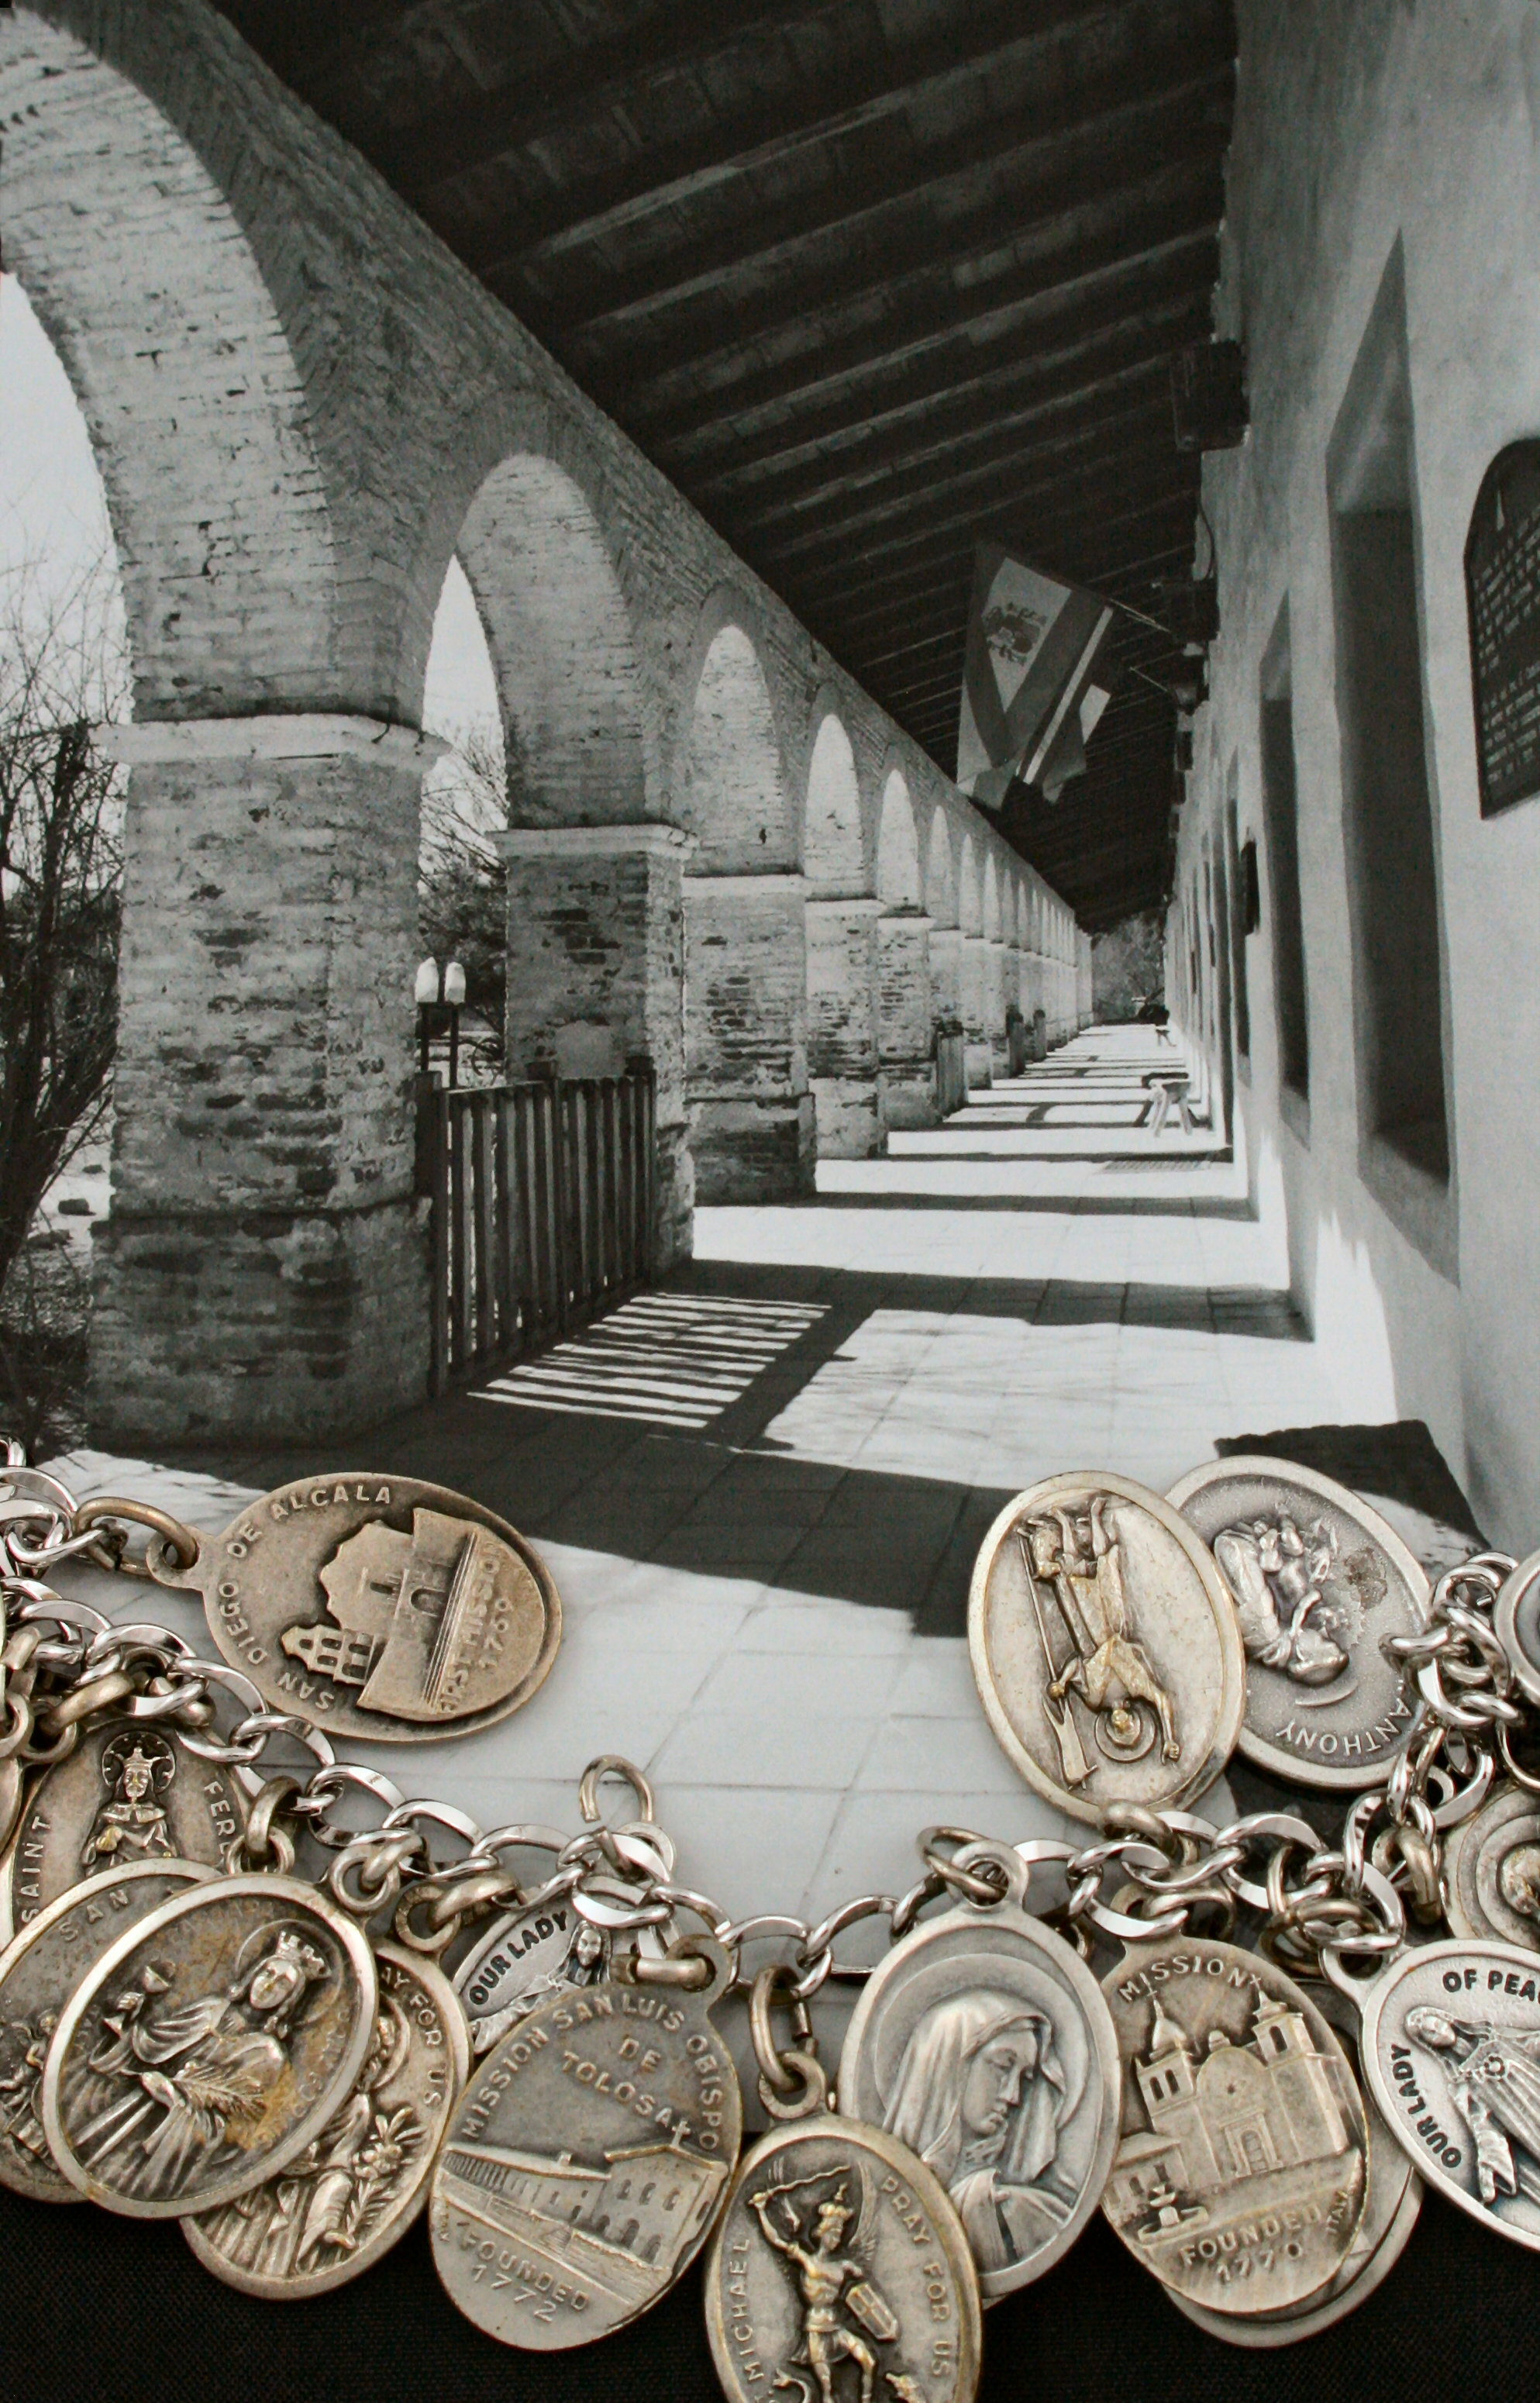 Mission charms